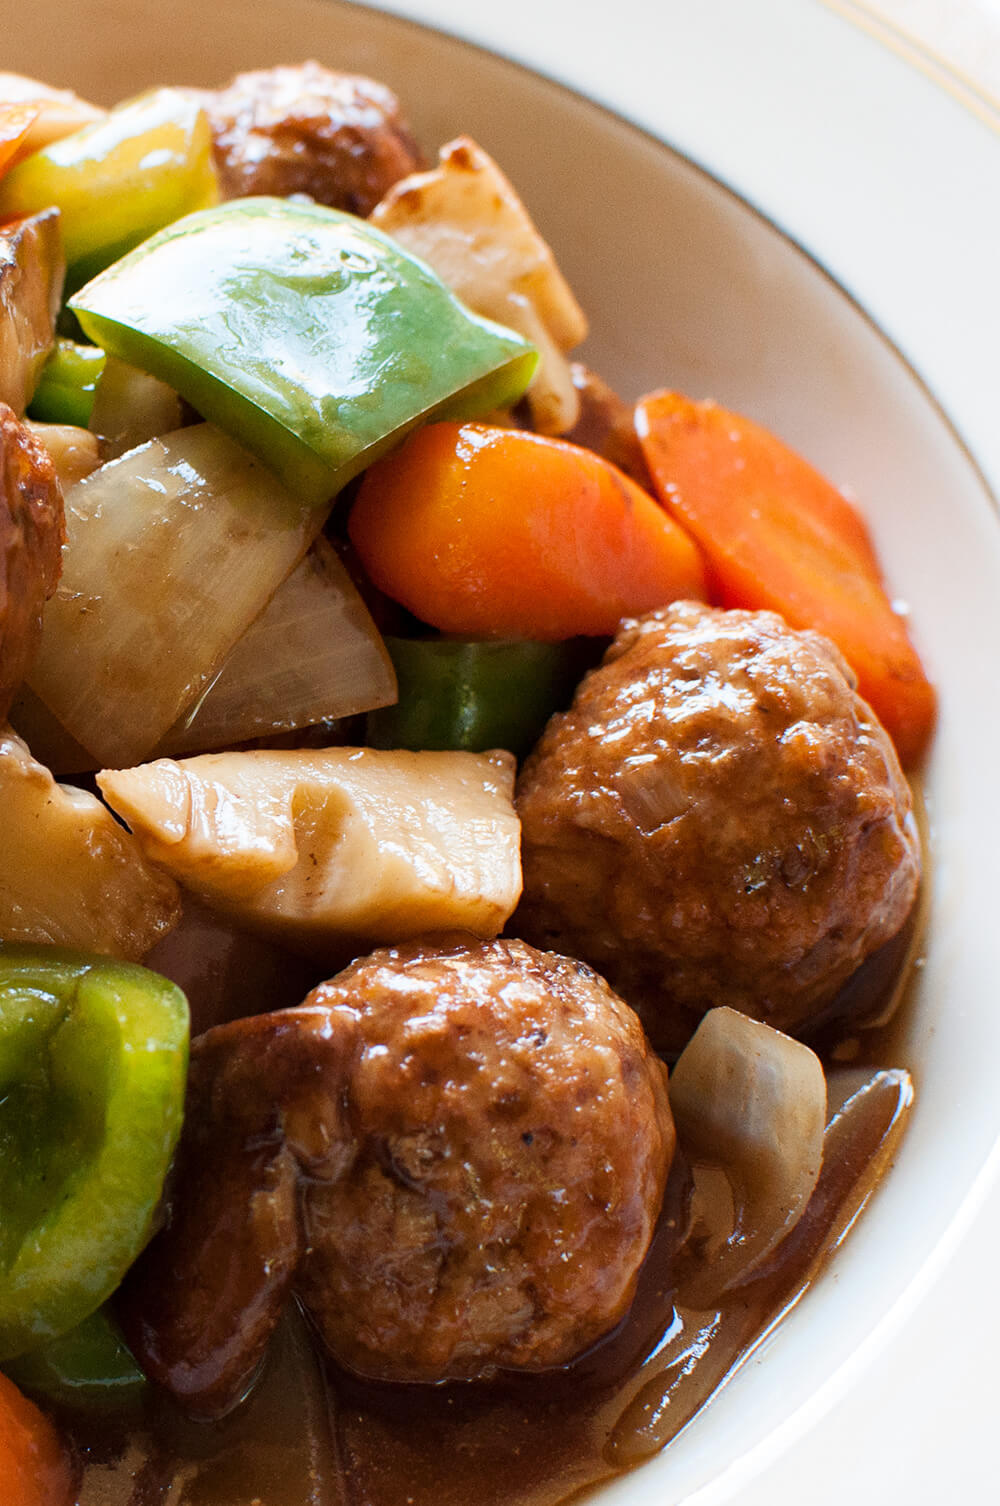 Sweet and sour pork usually uses cubed pork but this is a meatball version of sweet and sour pork. Onions in the meatballs give the meat more flavour and the sauce is not as strong as original Chinese sweet and sour pork.